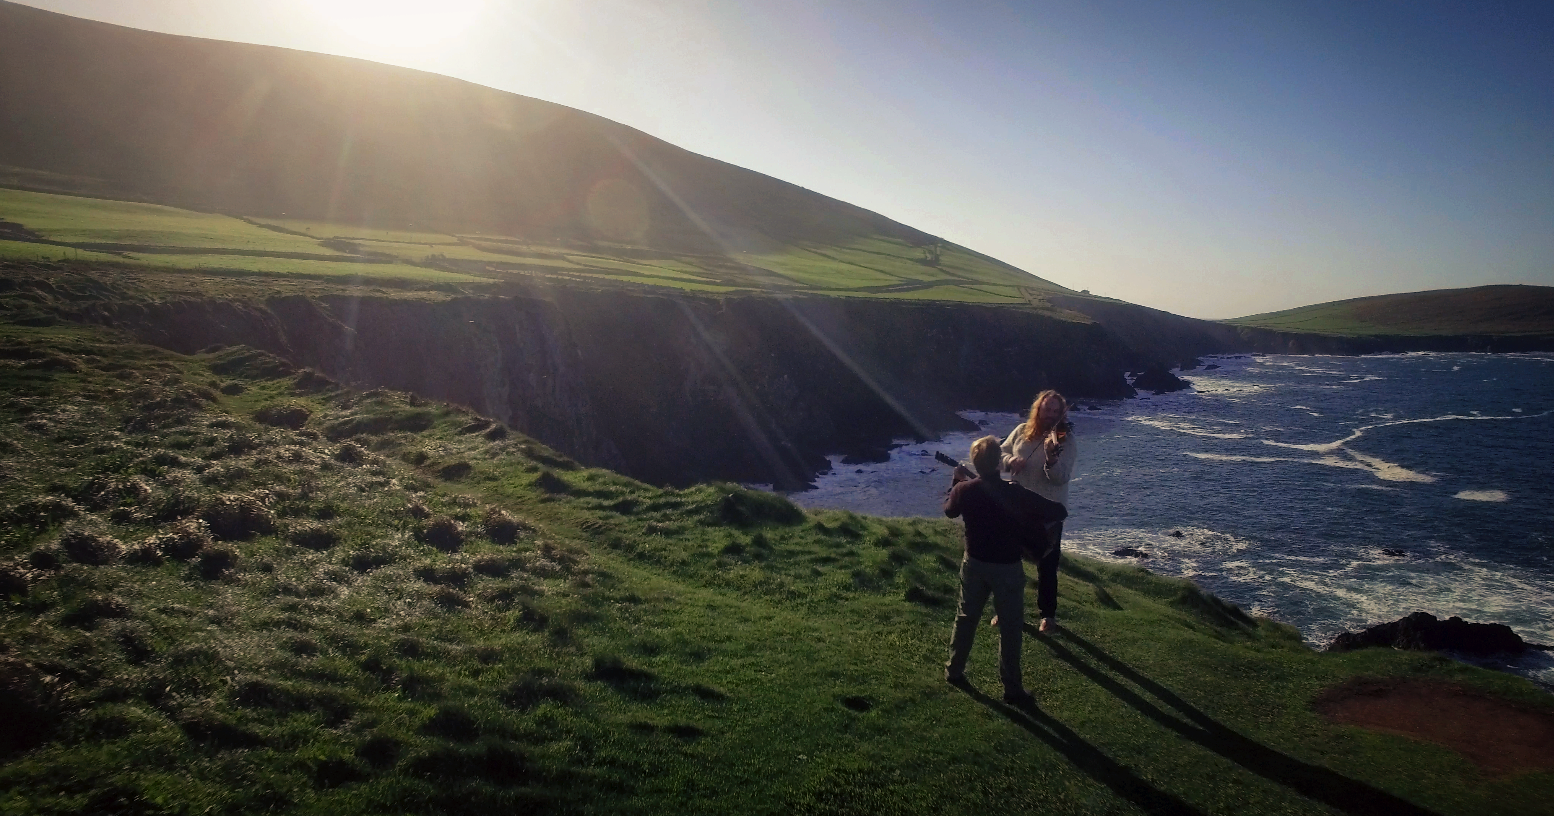 Bill and Edwin on the cliffs in Ireland